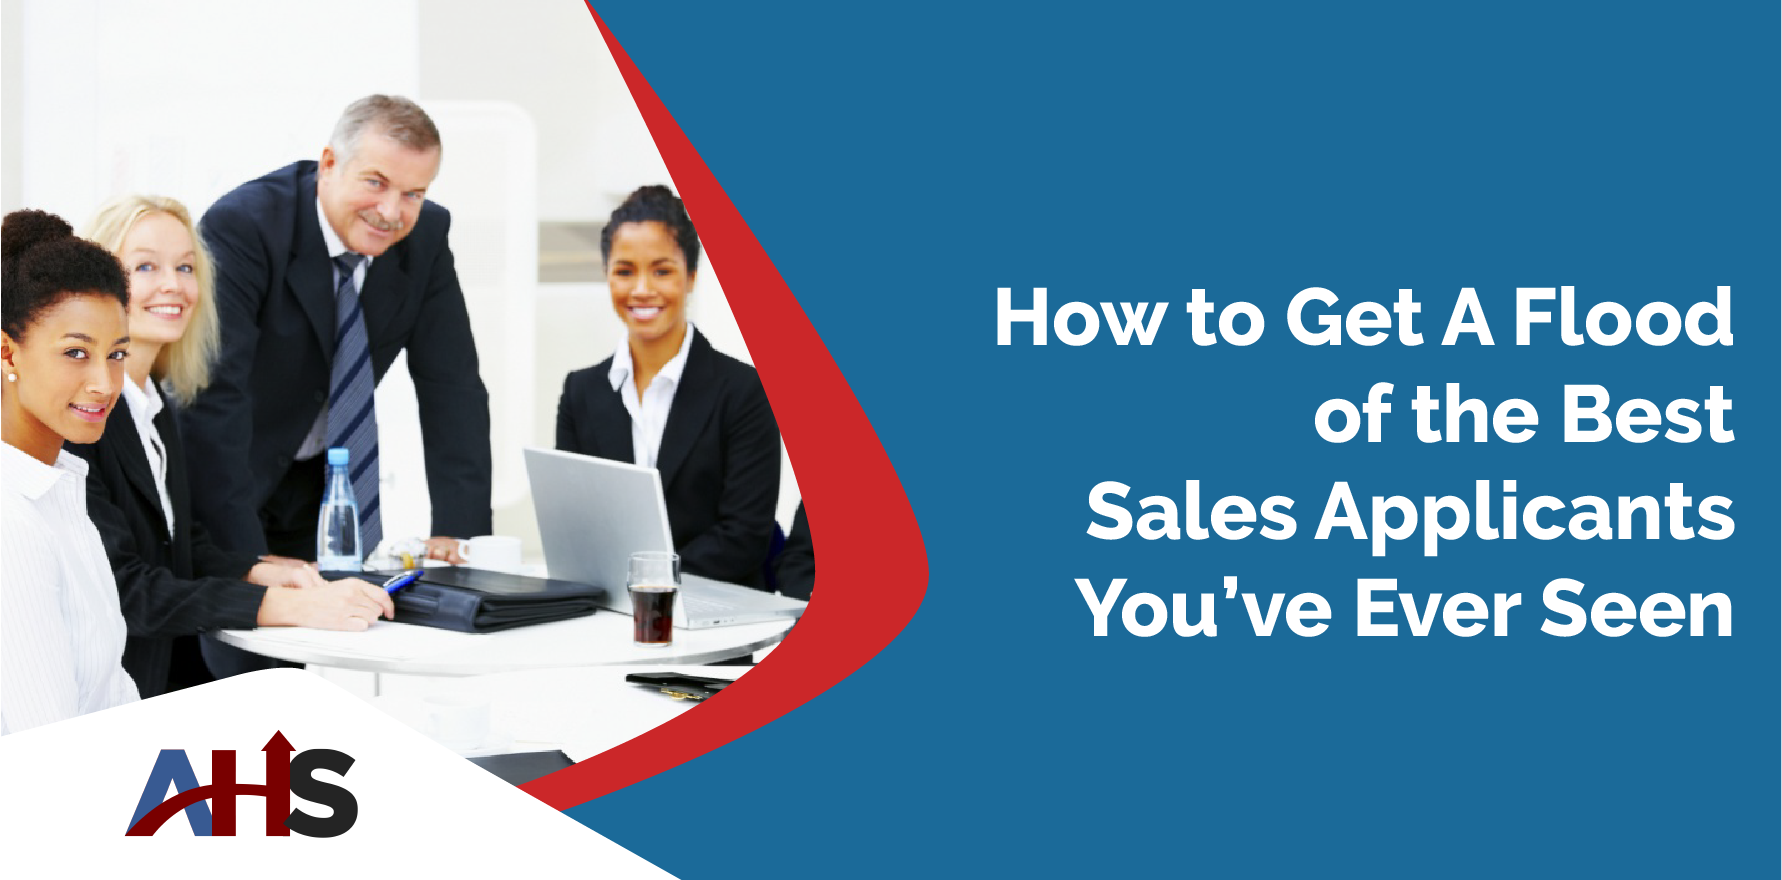 How to Get A Flood of the Best Sales Applicants You've Ever Seen